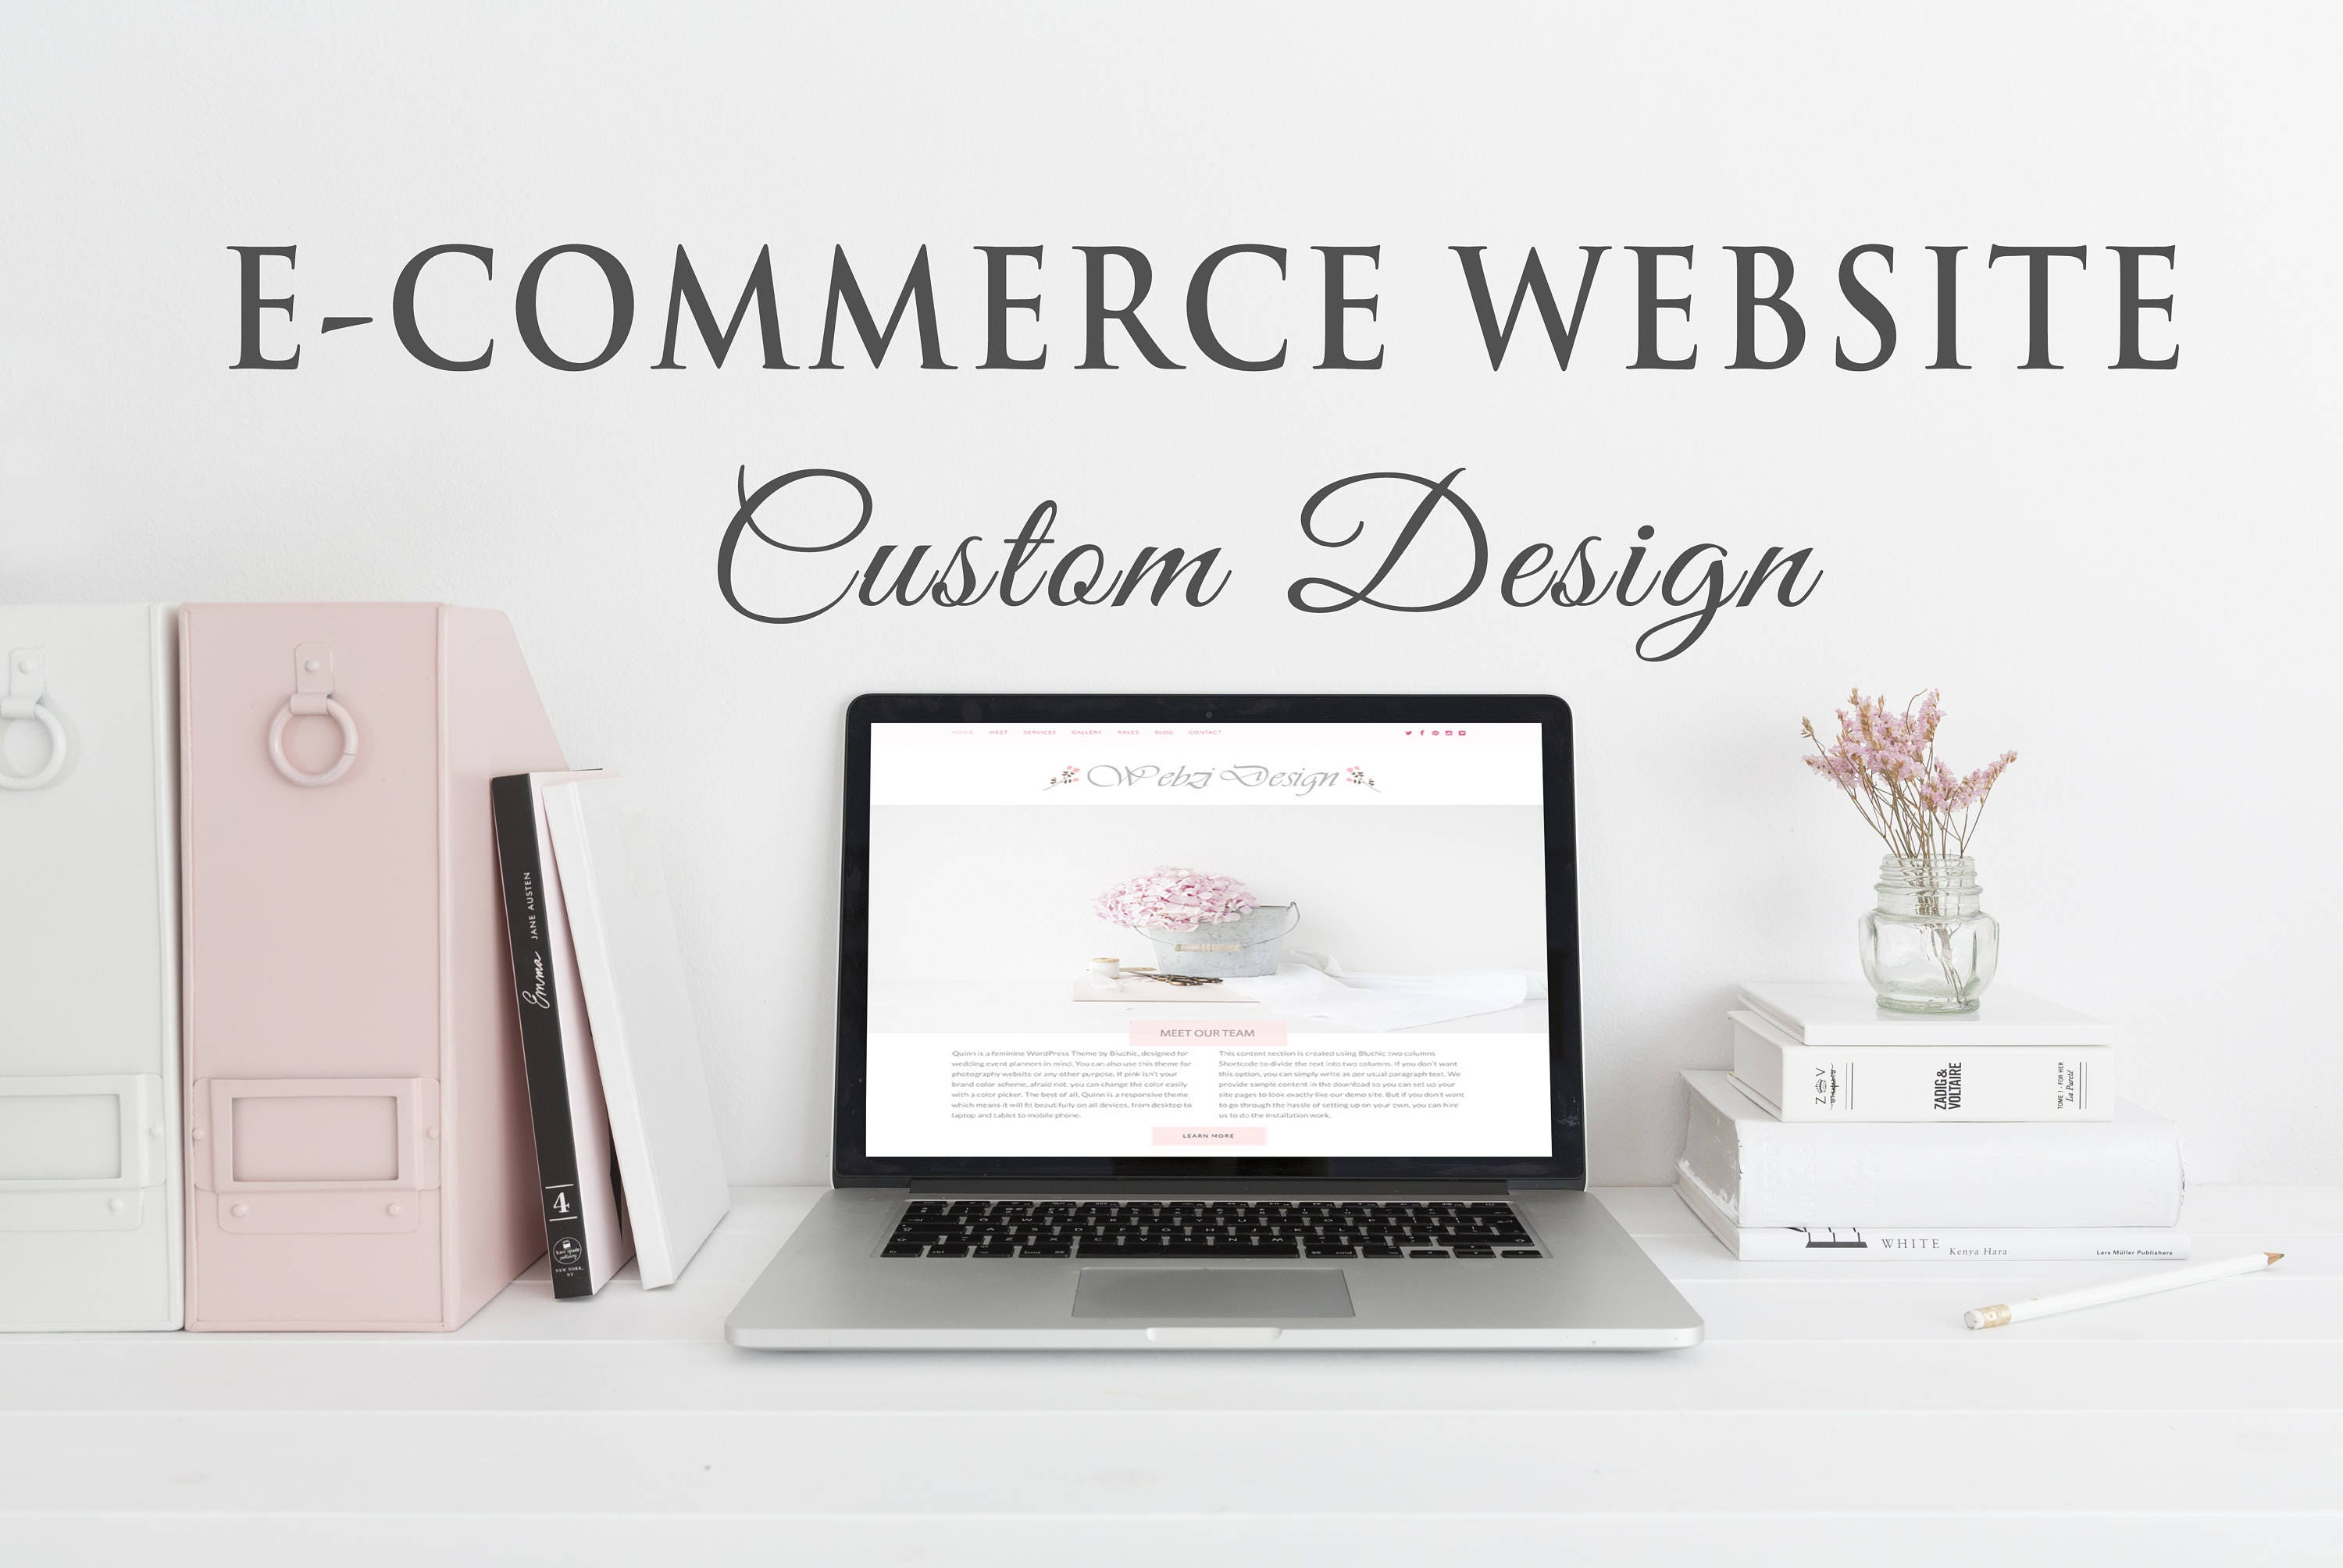 Custom Shop Website Design, Web Design, Individual Website, Marketplace,  Shop Platform, Brand Website, E-Commerce Site, Business Site